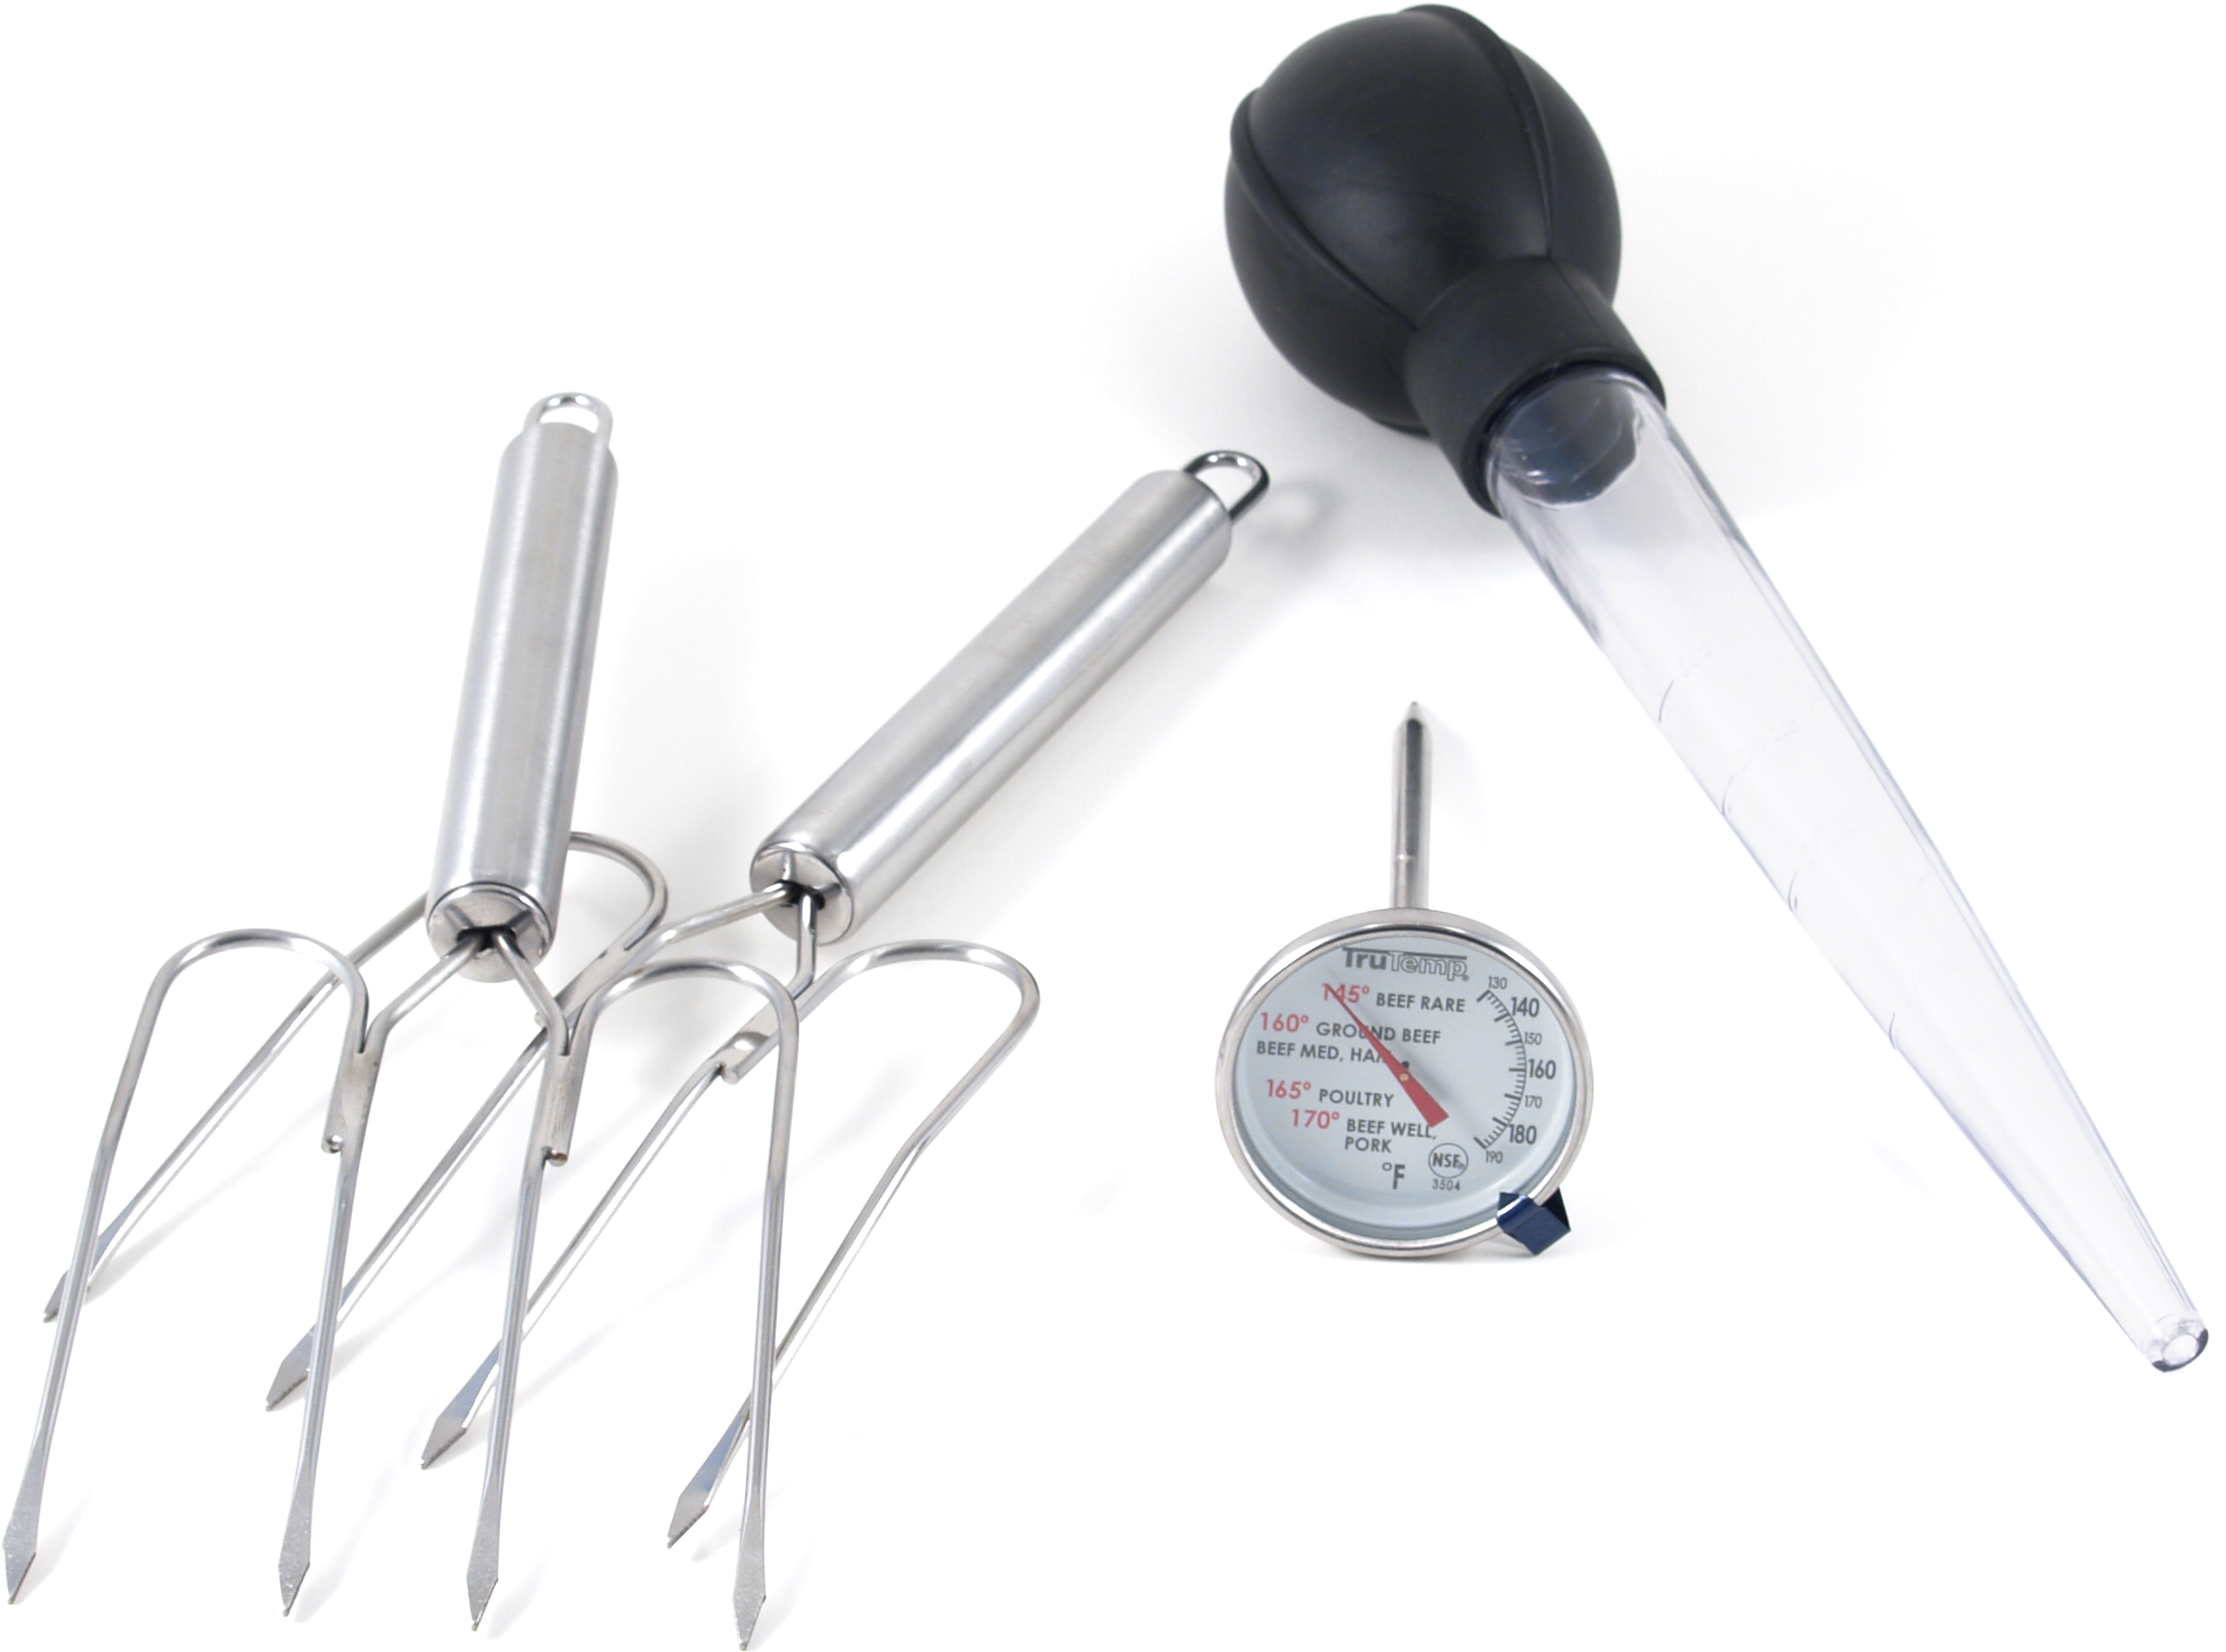 Taylor TruTemp Meat Thermometer, Lifters and Baster Set